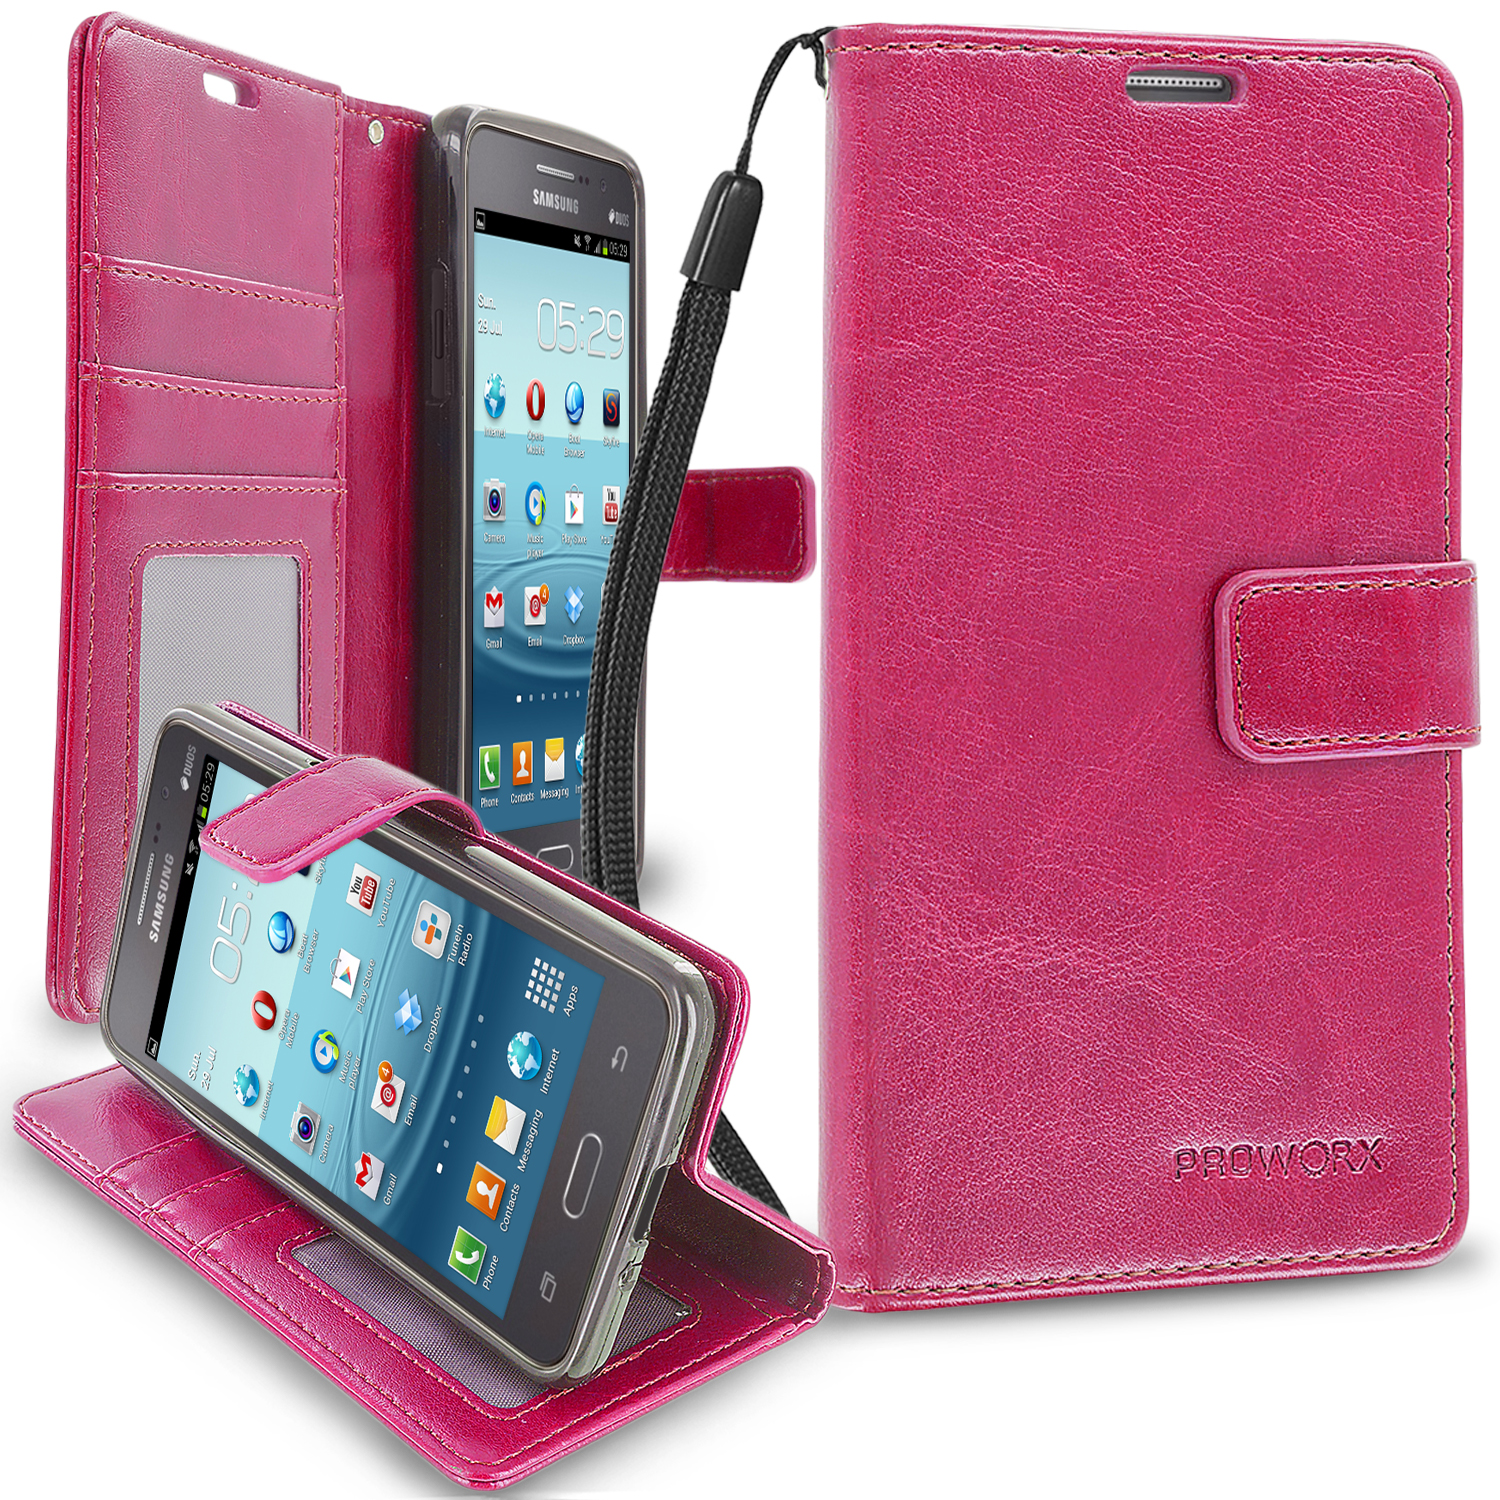 Samsung Galaxy Grand Prime LTE G530 Hot Pink ProWorx Wallet Case Luxury PU Leather Case Cover With Card Slots & Stand